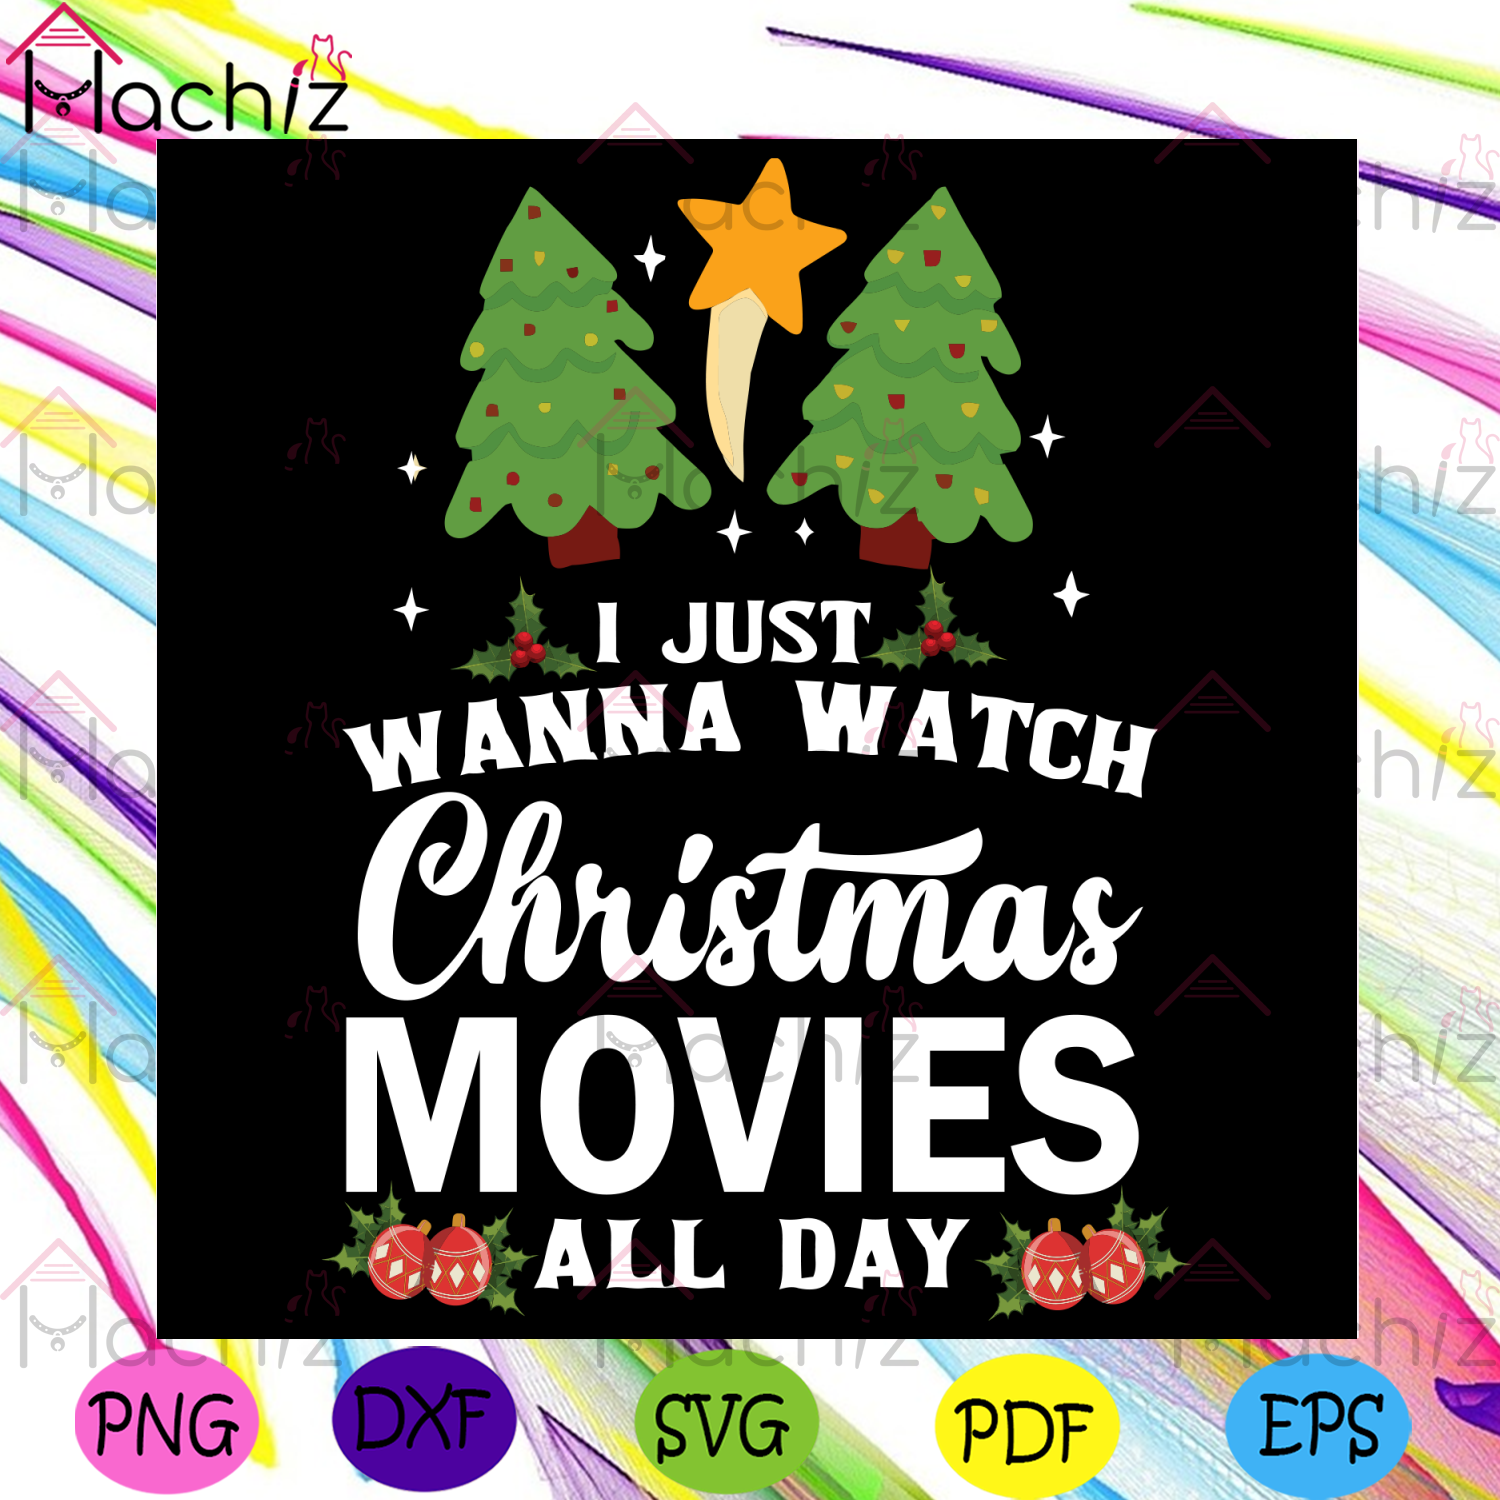 I Just Wanna Watch Christmas Movies All Day Svg, Christmas Svg, Christmas Movies Svg, Christmas Tree Svg, Christmas Holiday Svg, Christmas Night Svg, Twinkle Svg, Jolly Svg, Christmas Day Svg, Christmas Star Svg, Christmas Gifts Svg